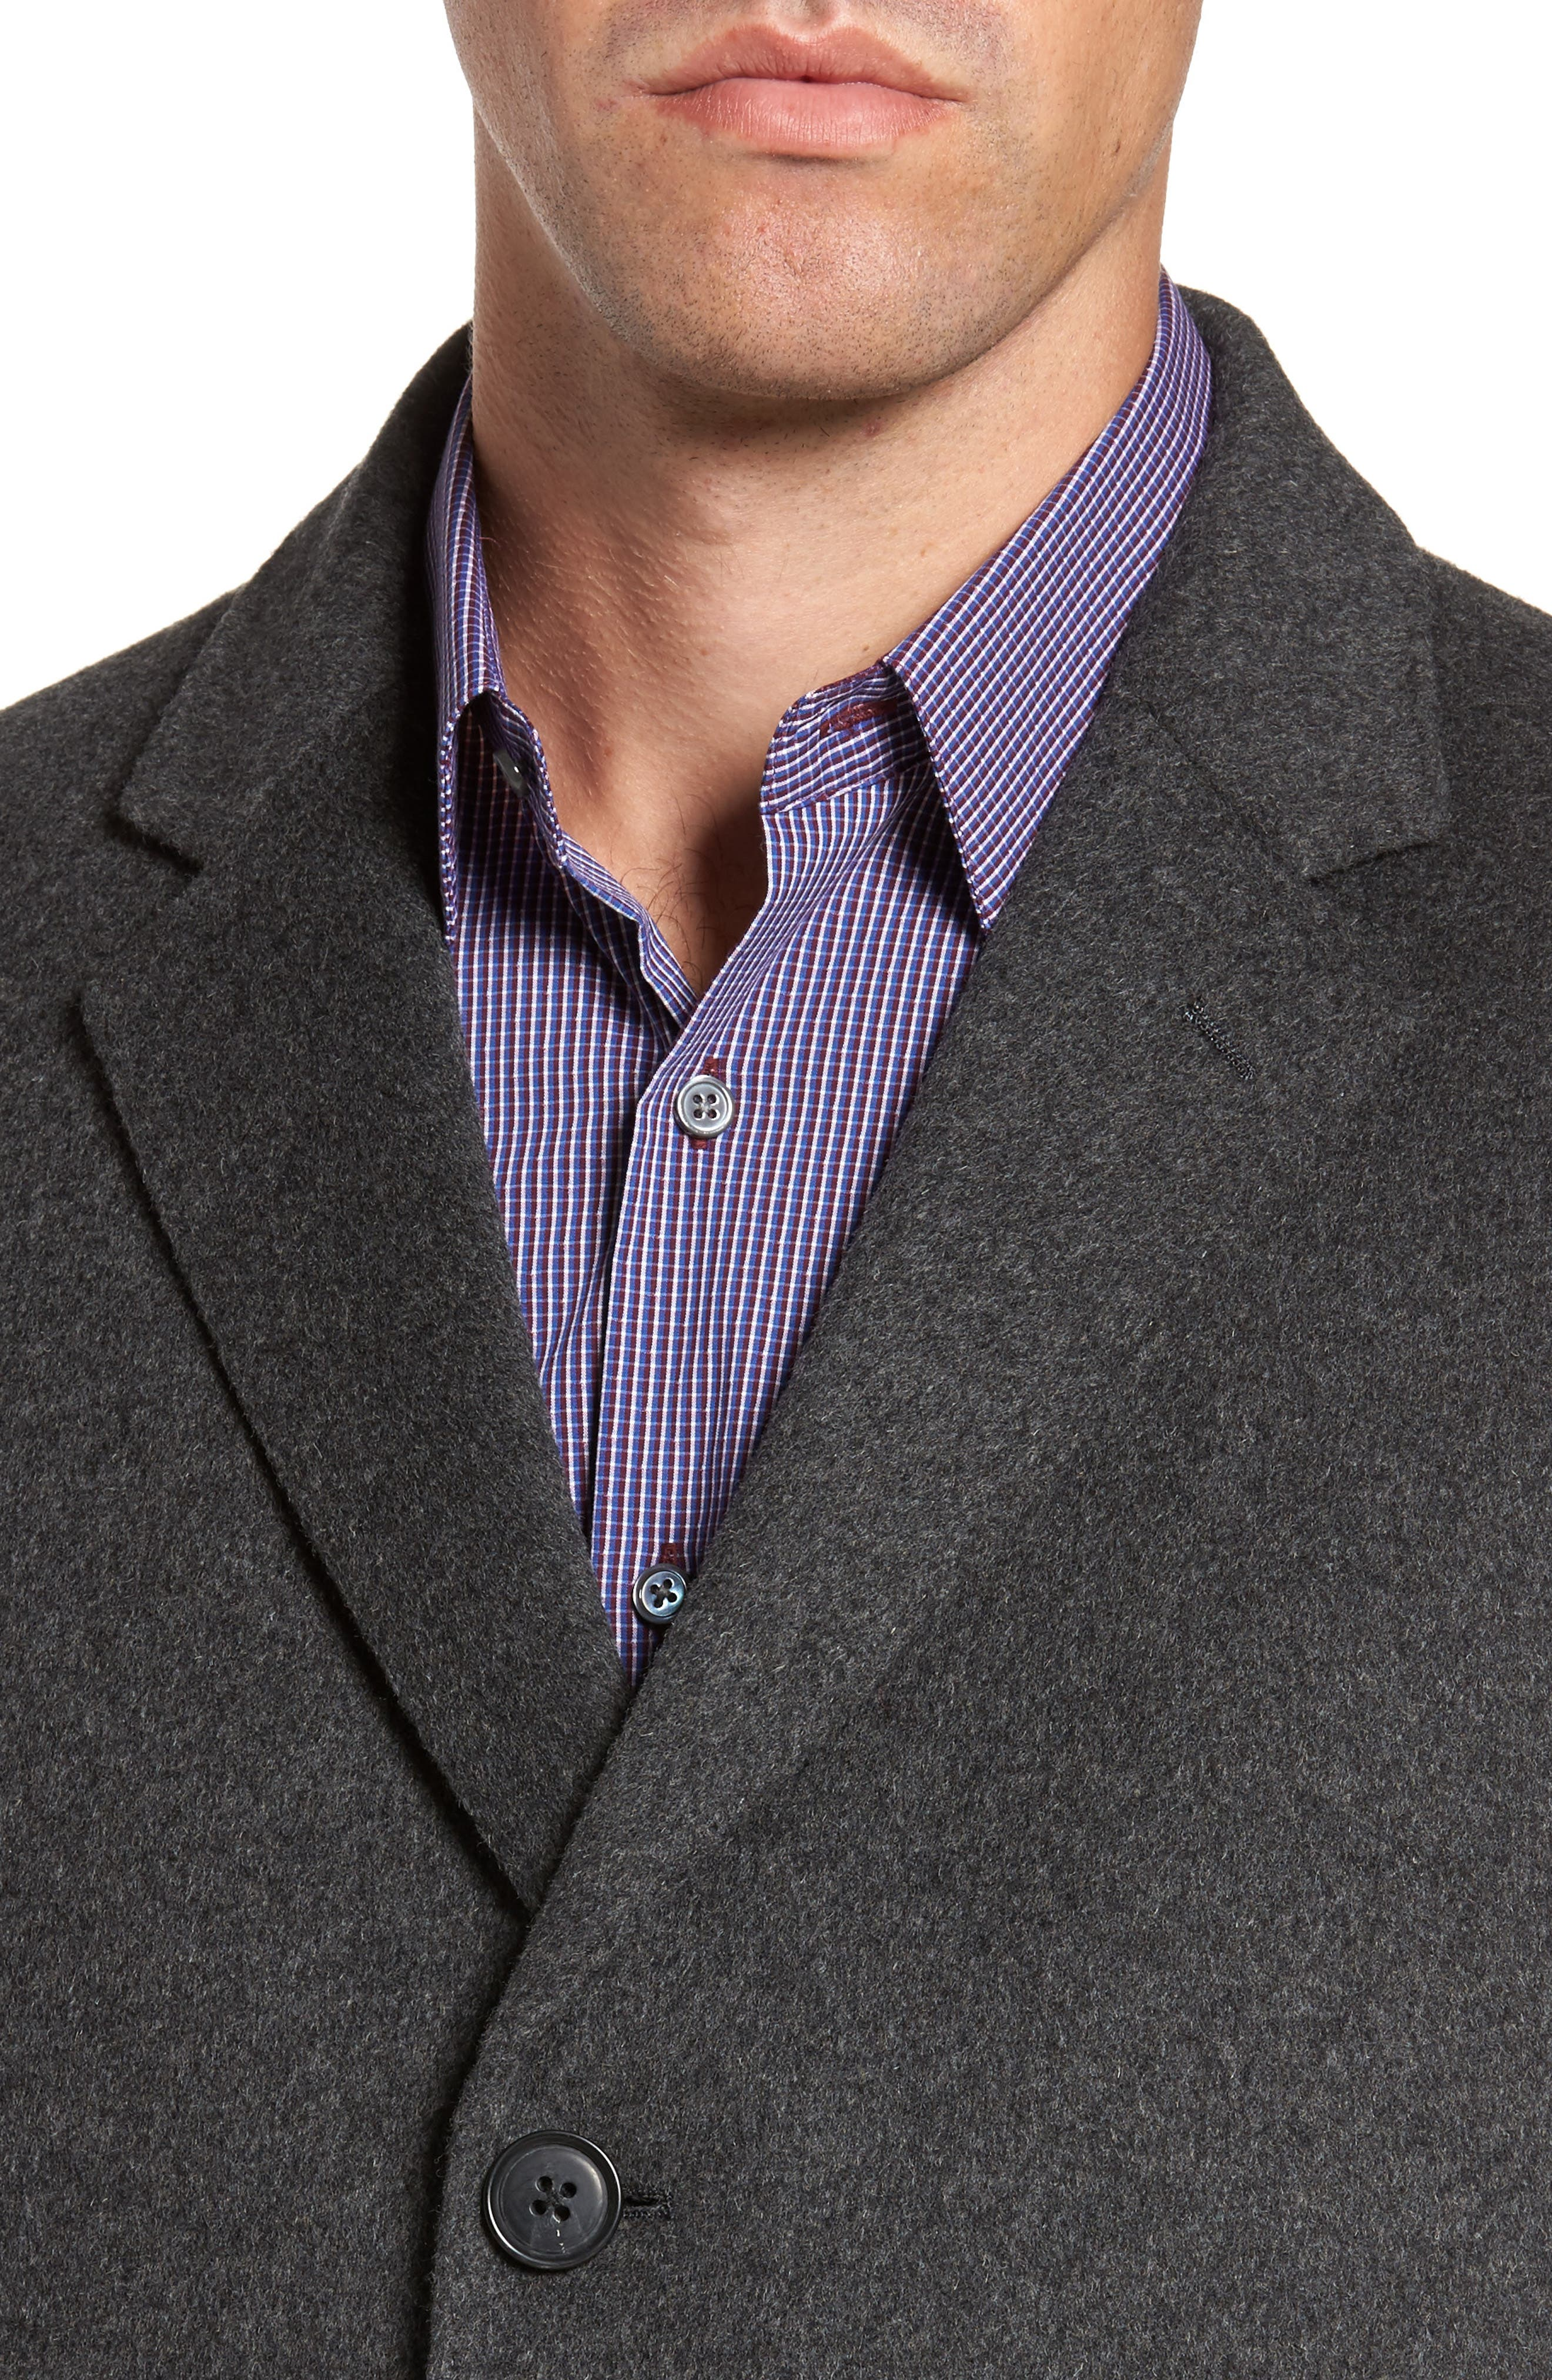 Mason Wool & Cashmere Overcoat,                             Alternate thumbnail 11, color,